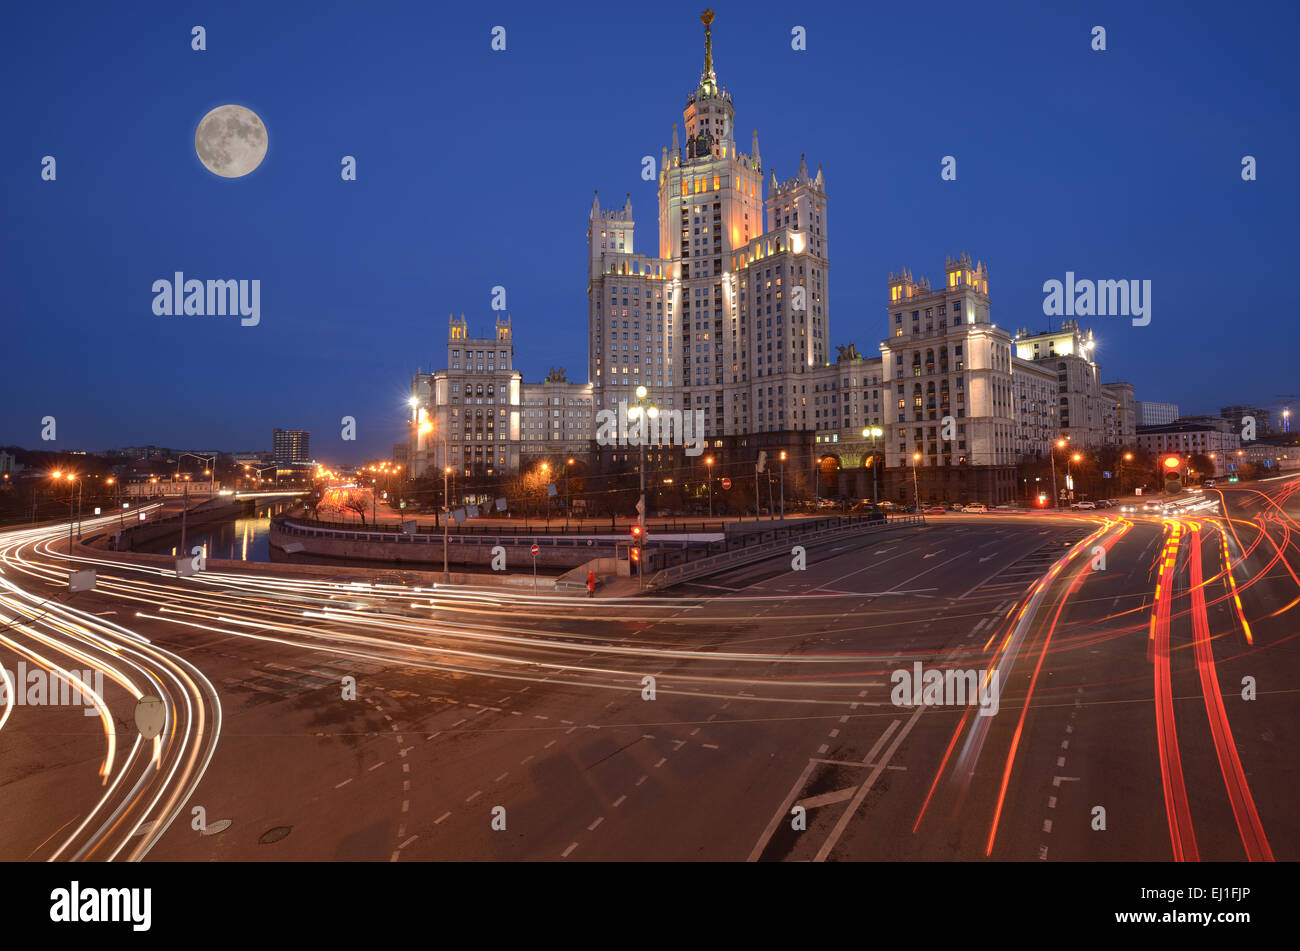 Streets by the river in the historical center of Moscow. Russia. Stock Photo